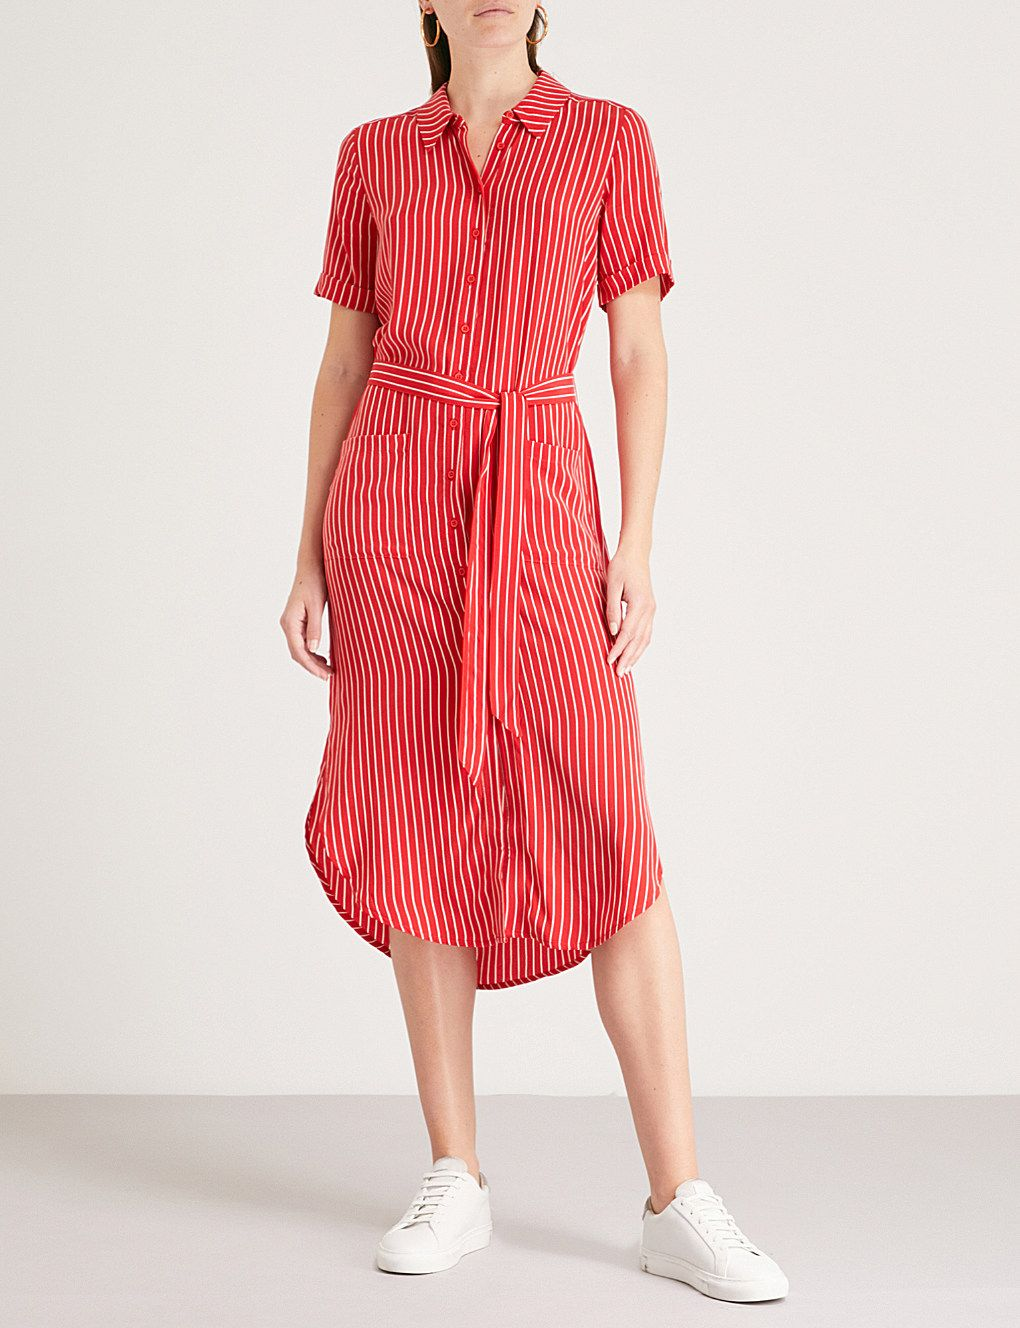 Montana Striped Shirt Dress In 2019 Dresses Dresses Shirt Dress